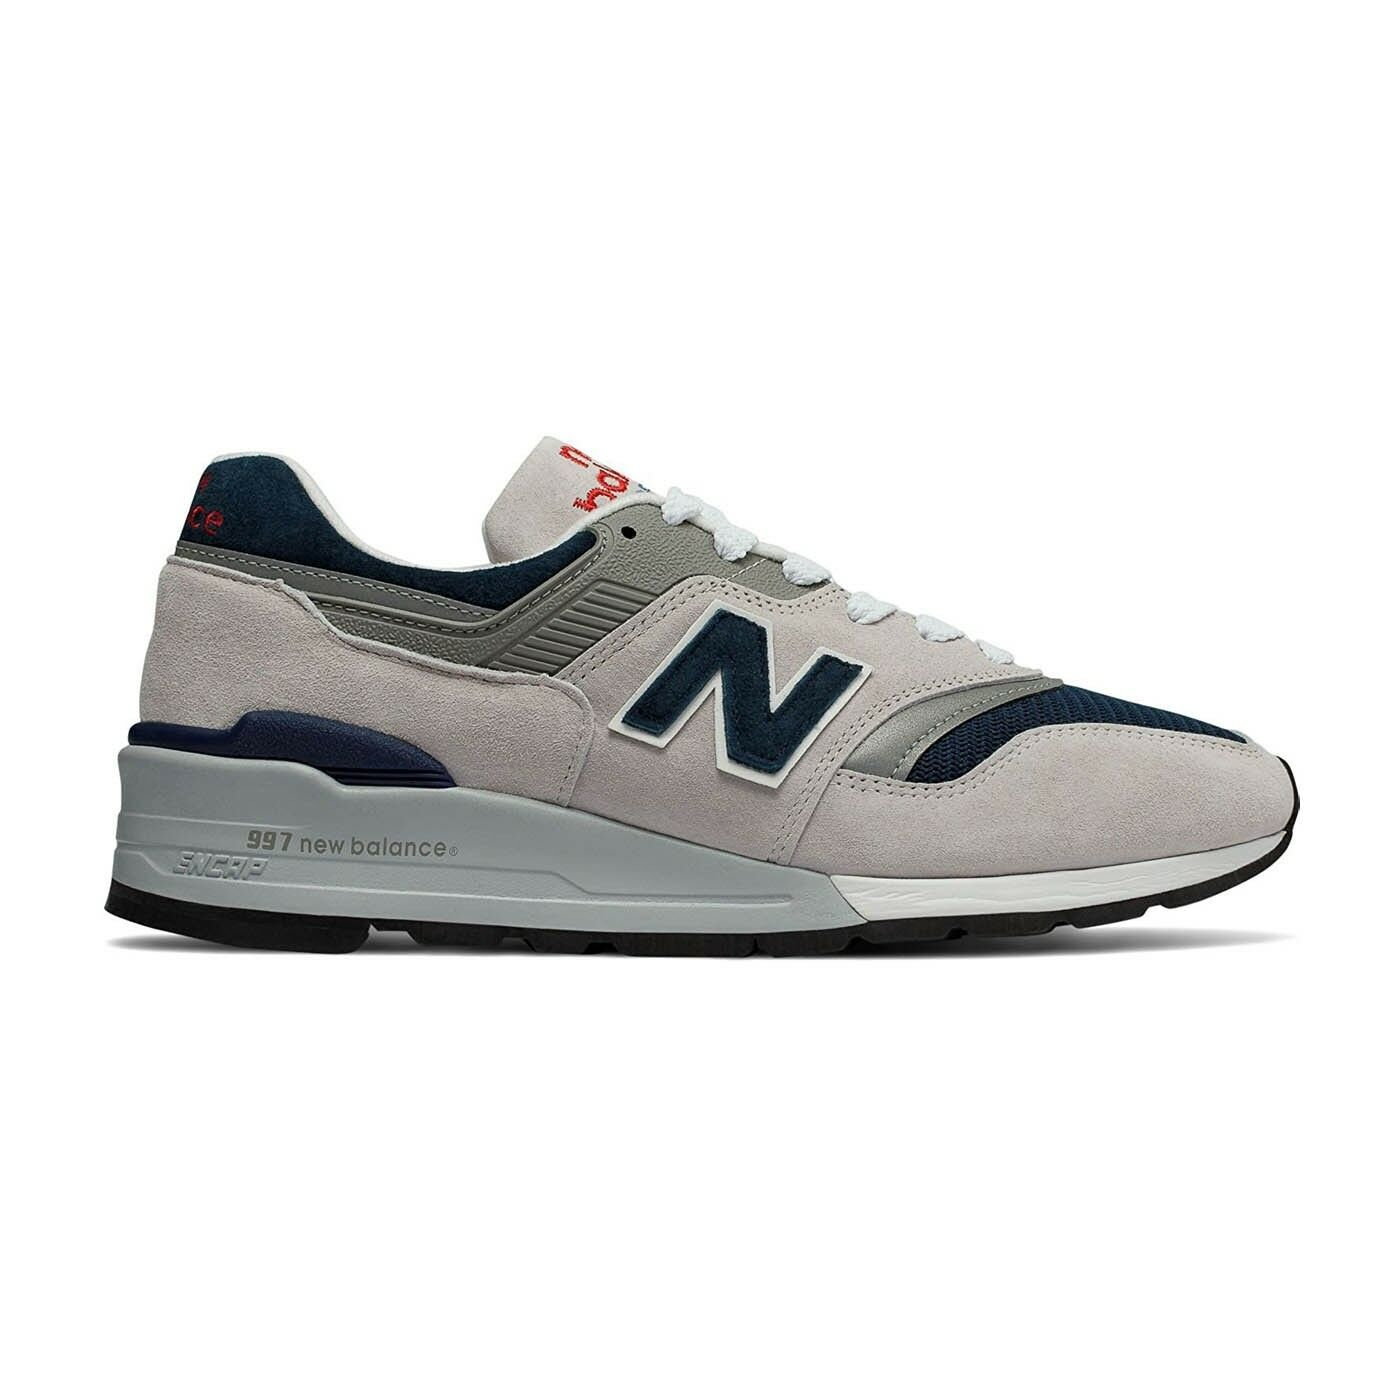 2f36ecfc91d1e New Balance Made In USA Mens Sneakers M997WEB nqwkfm4126-Trainers